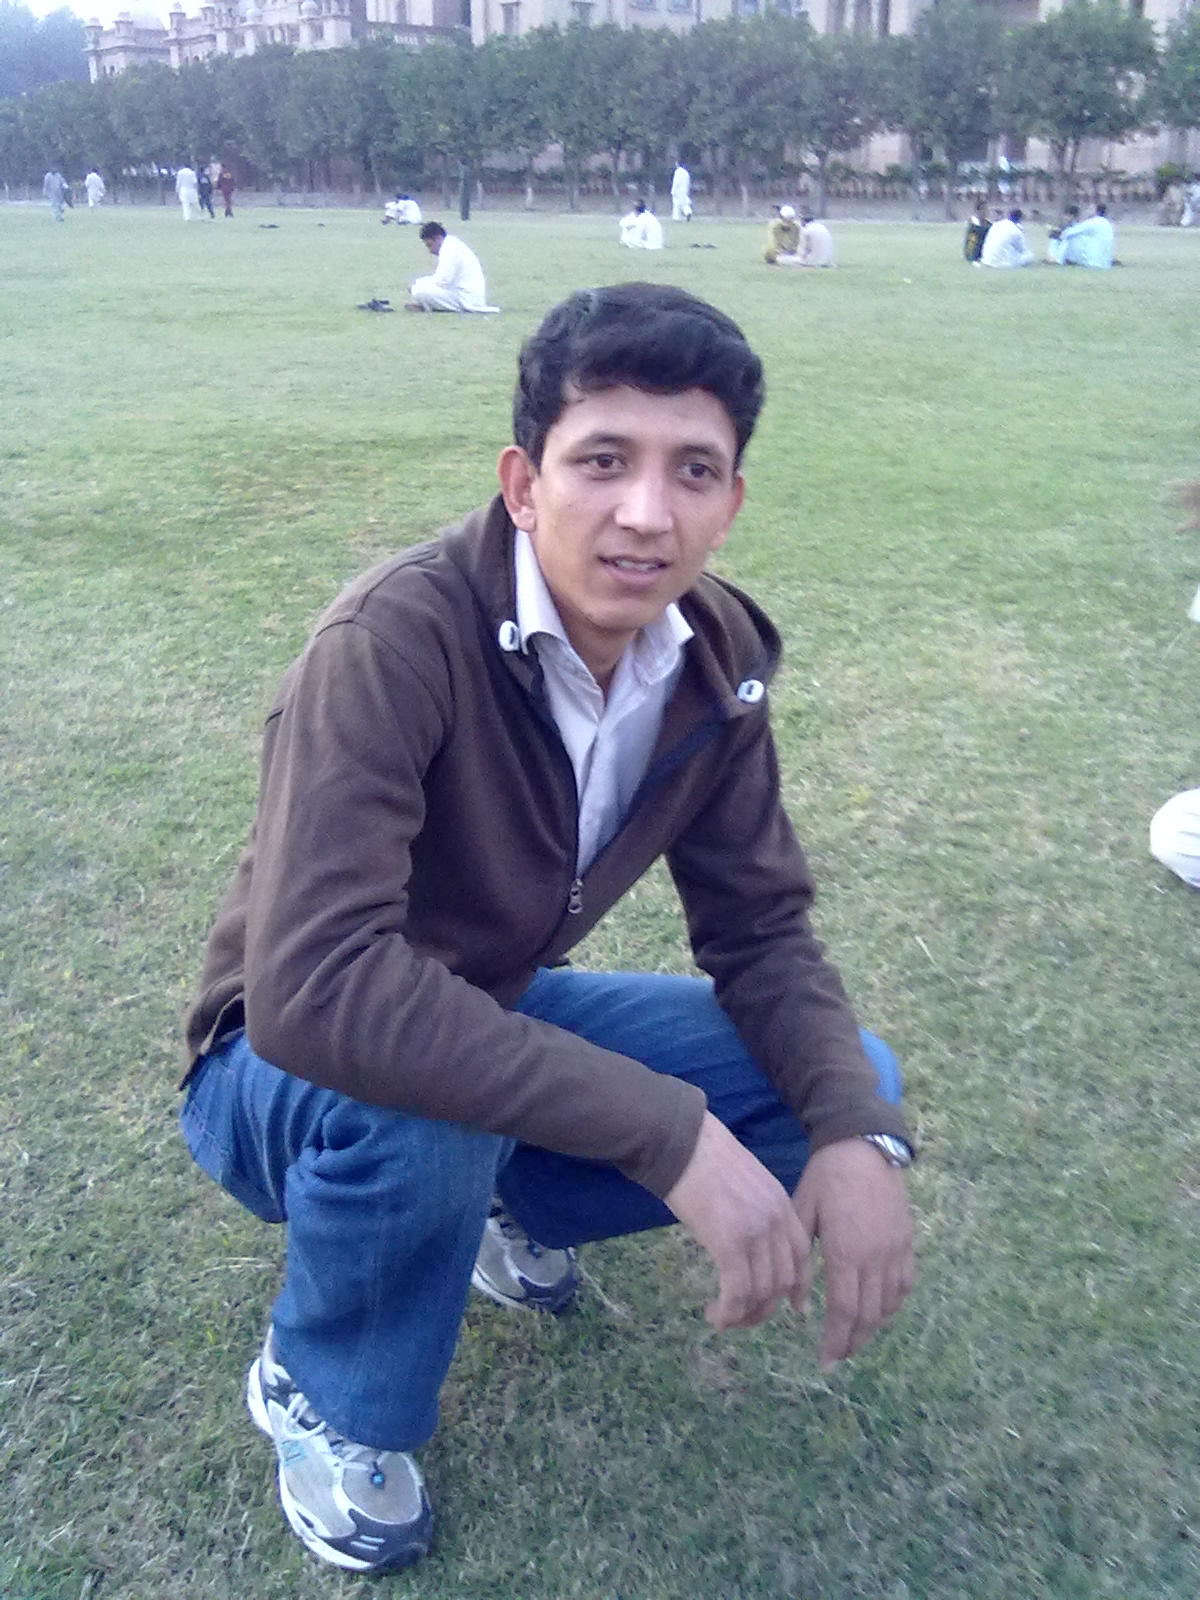 playing cricket in ICC